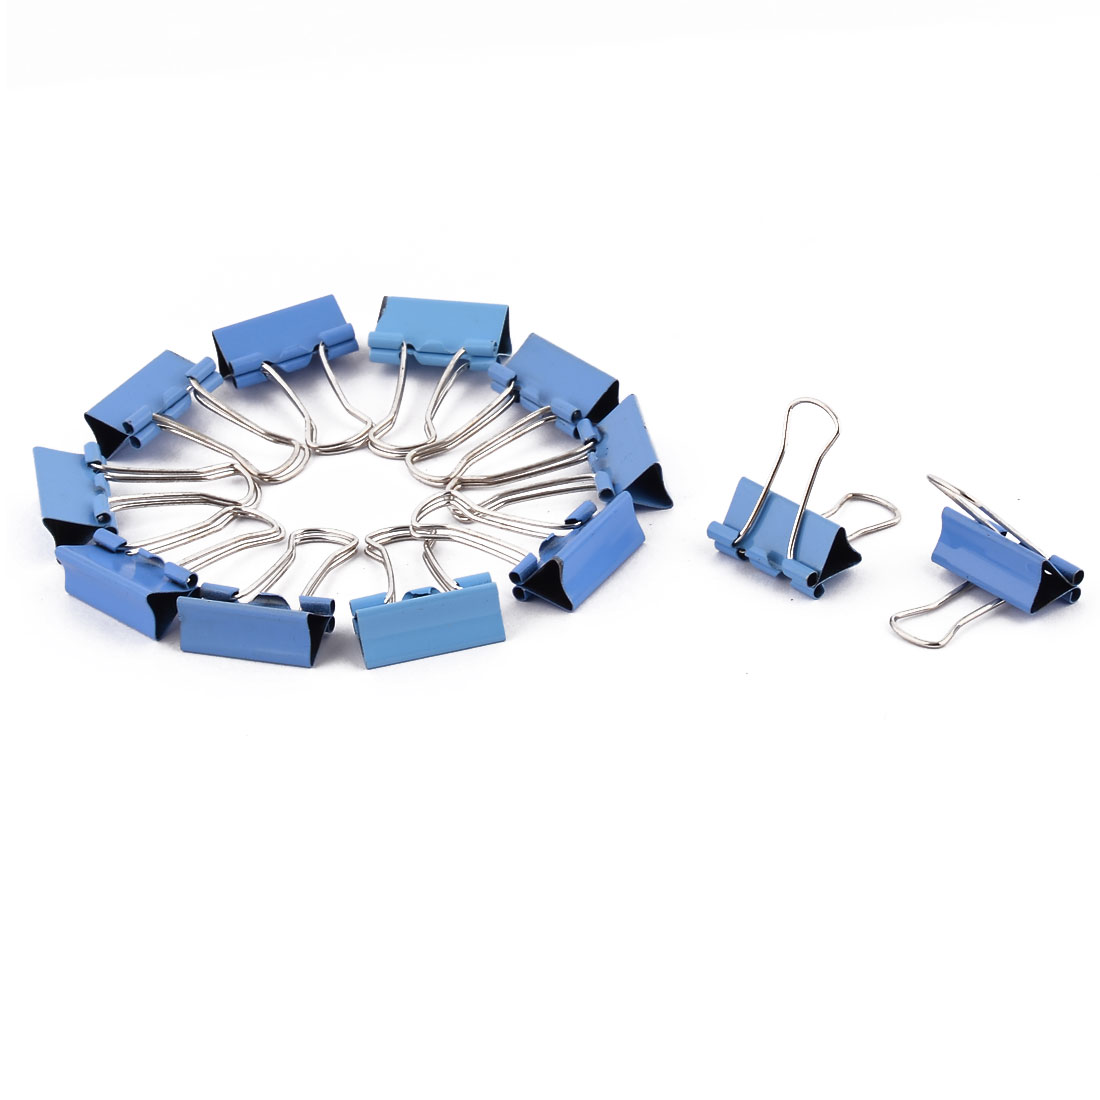 Home Metal Bill File Ticket File Paper Work Binder Clips Clamps Blue 12 PCS